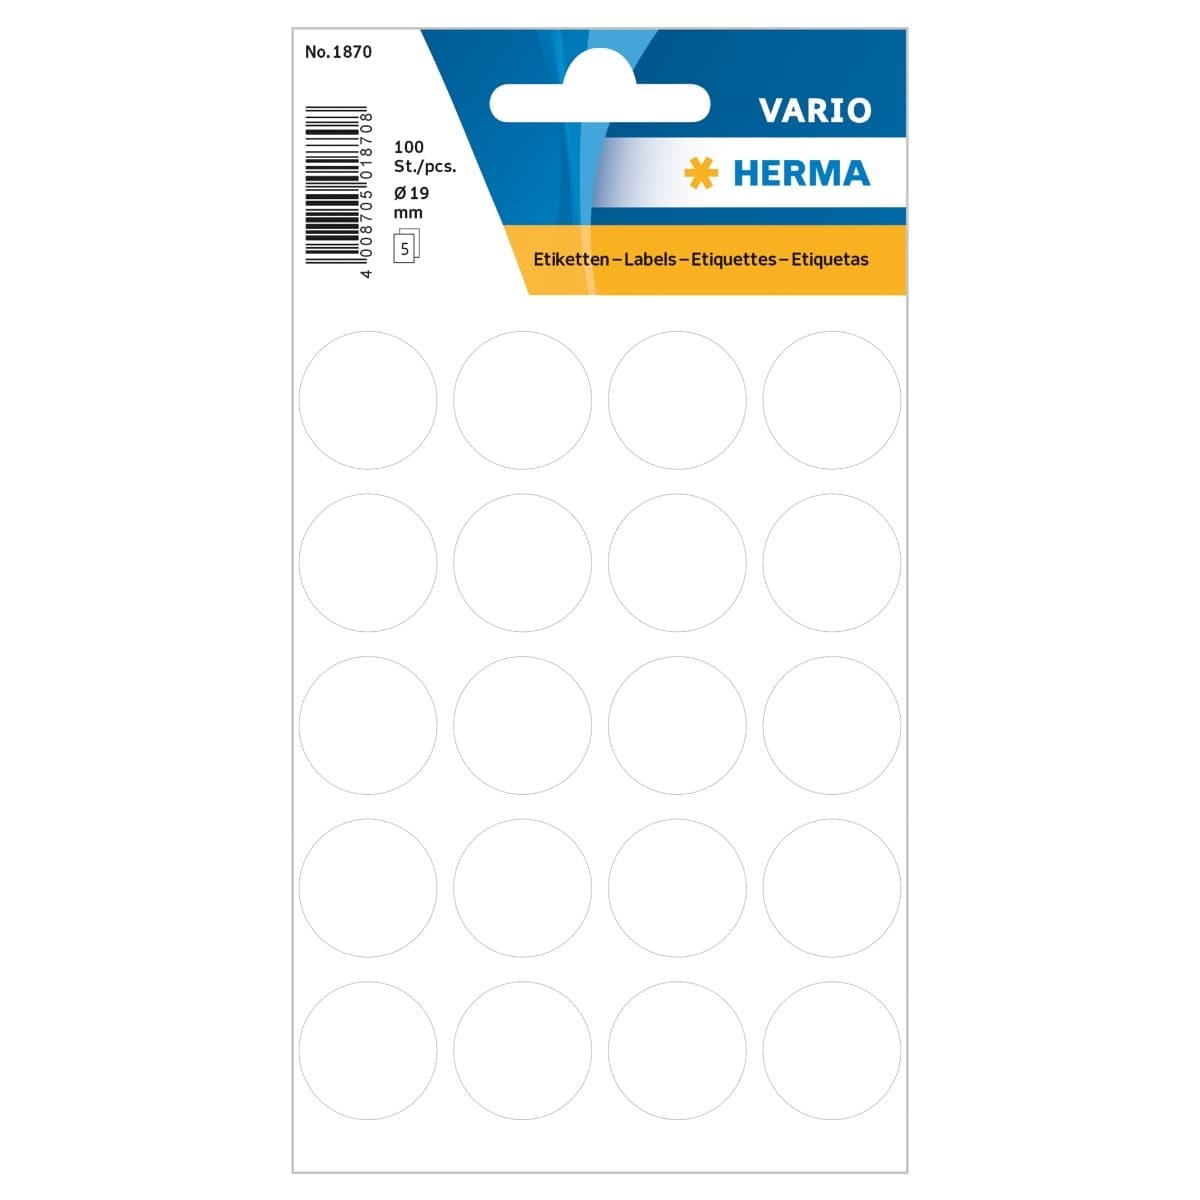 Herma Vario Sticker Color Dots, 19 mm, 100/pack, White